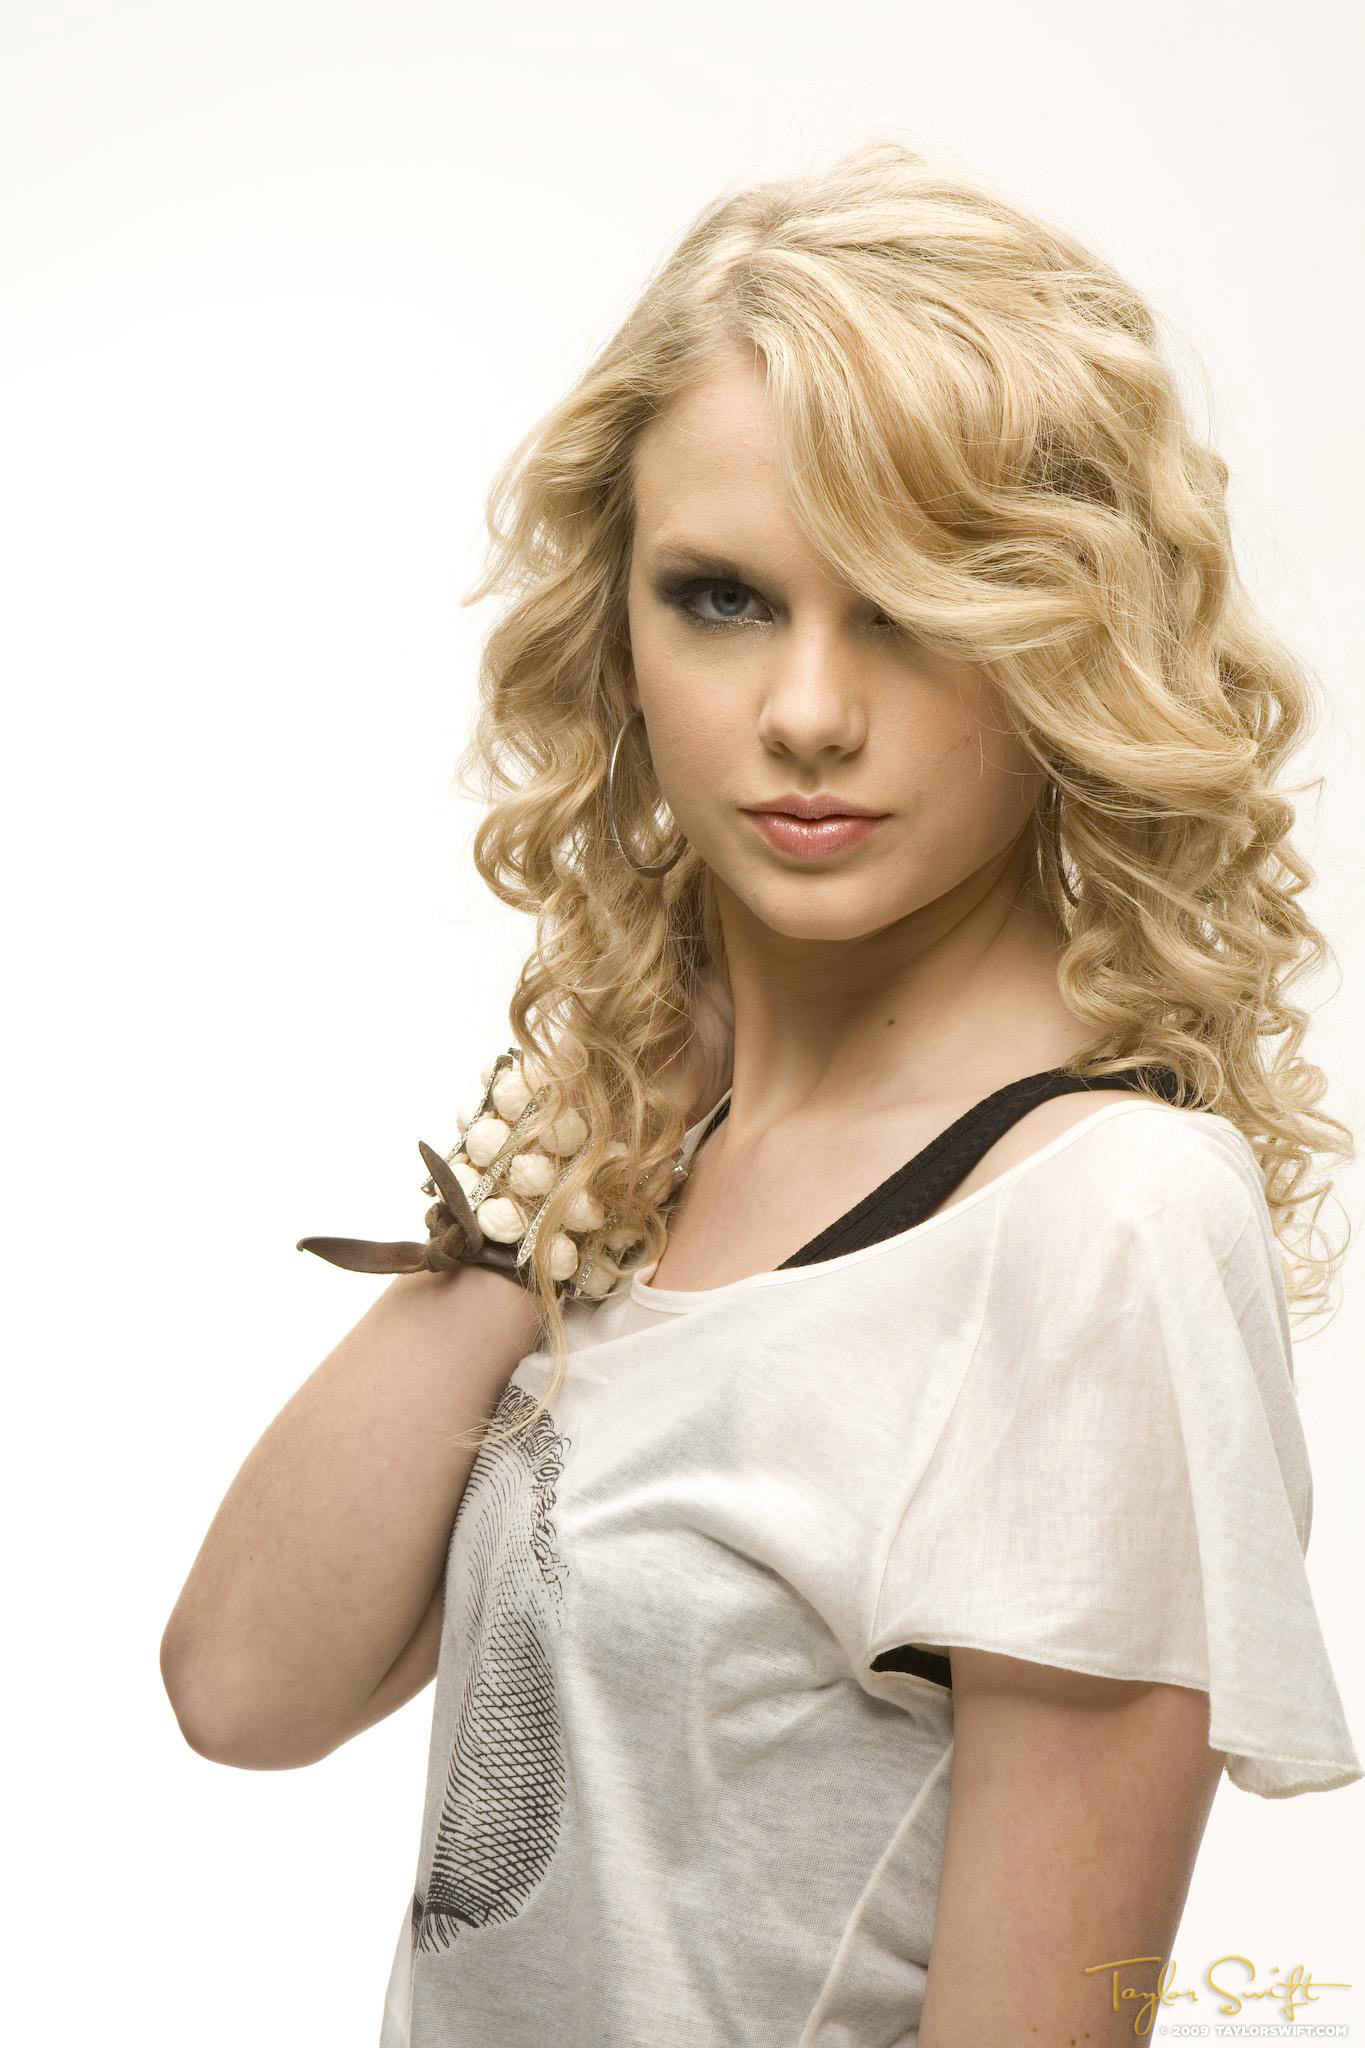 Taylor swift teardrops on guitar lyrics